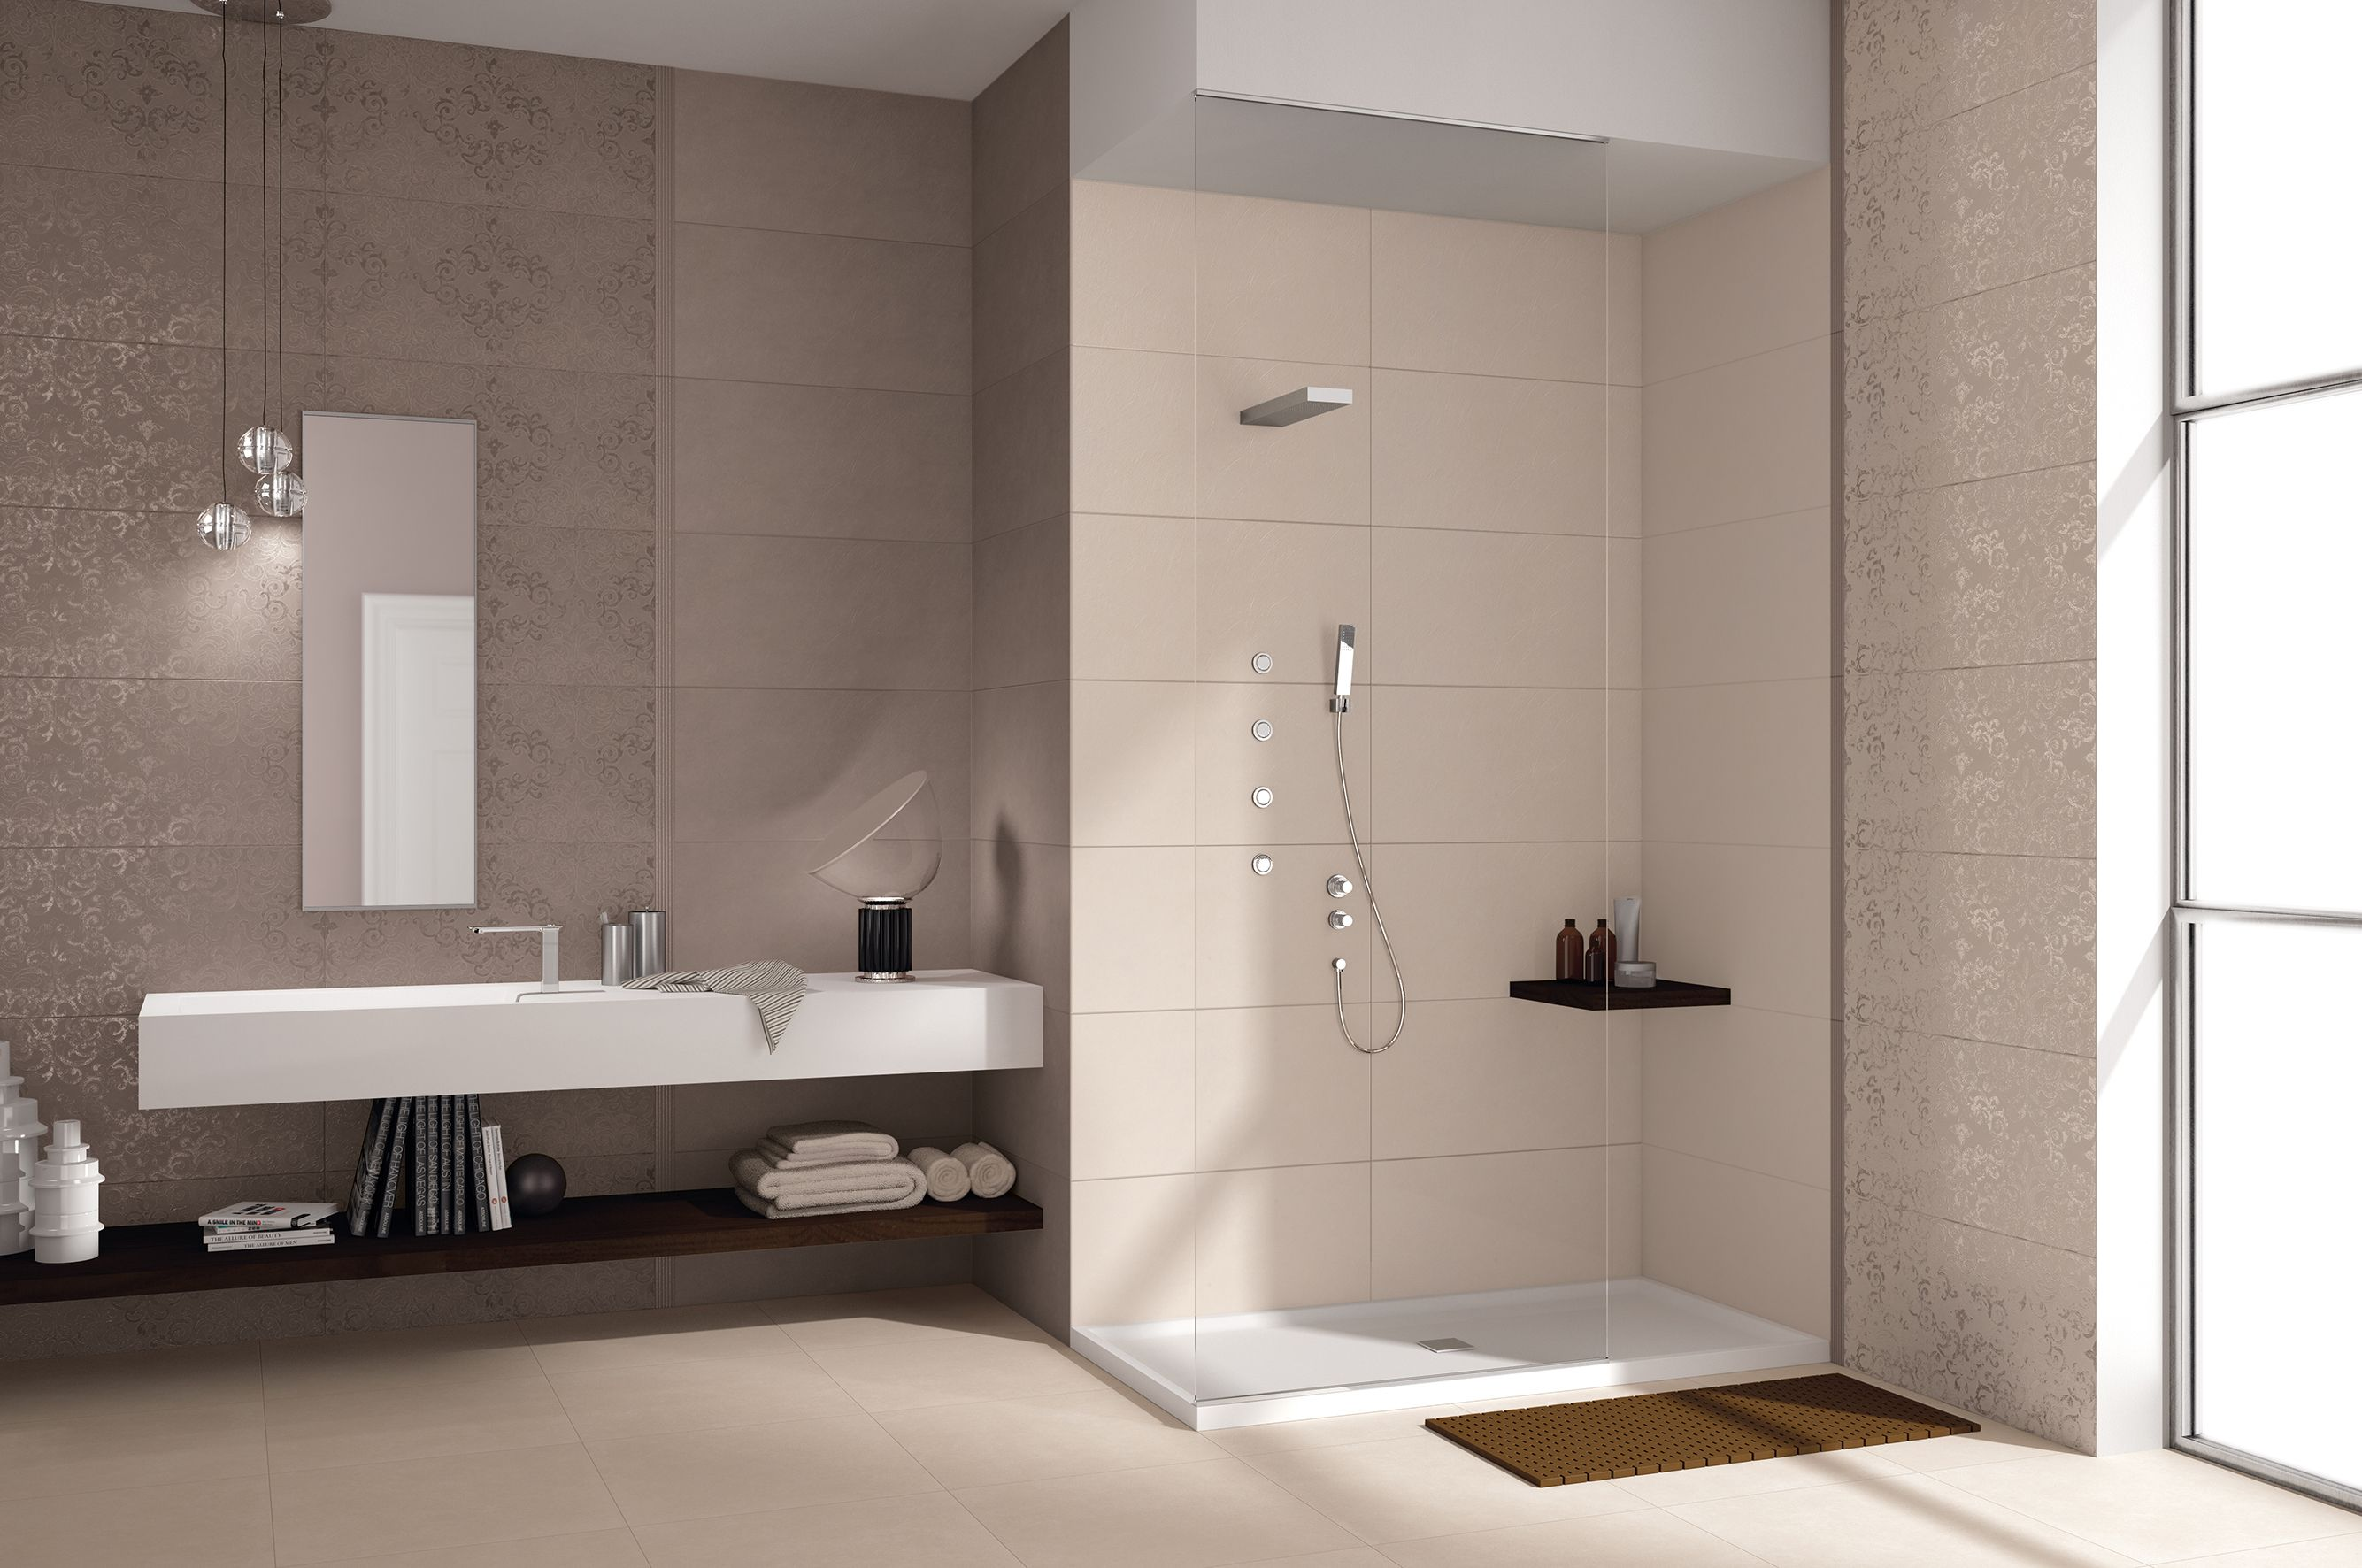 Questo bagno è stato realizzato con il colore Umber Ivory decoro damasco della nostra collezione da rivestimento Visual Design.  http://www.supergres.com/your-home/rivestimenti/item/925-visual  #Bathroom #RivestimentoBagni #WallTiles #CeramisOfItaly